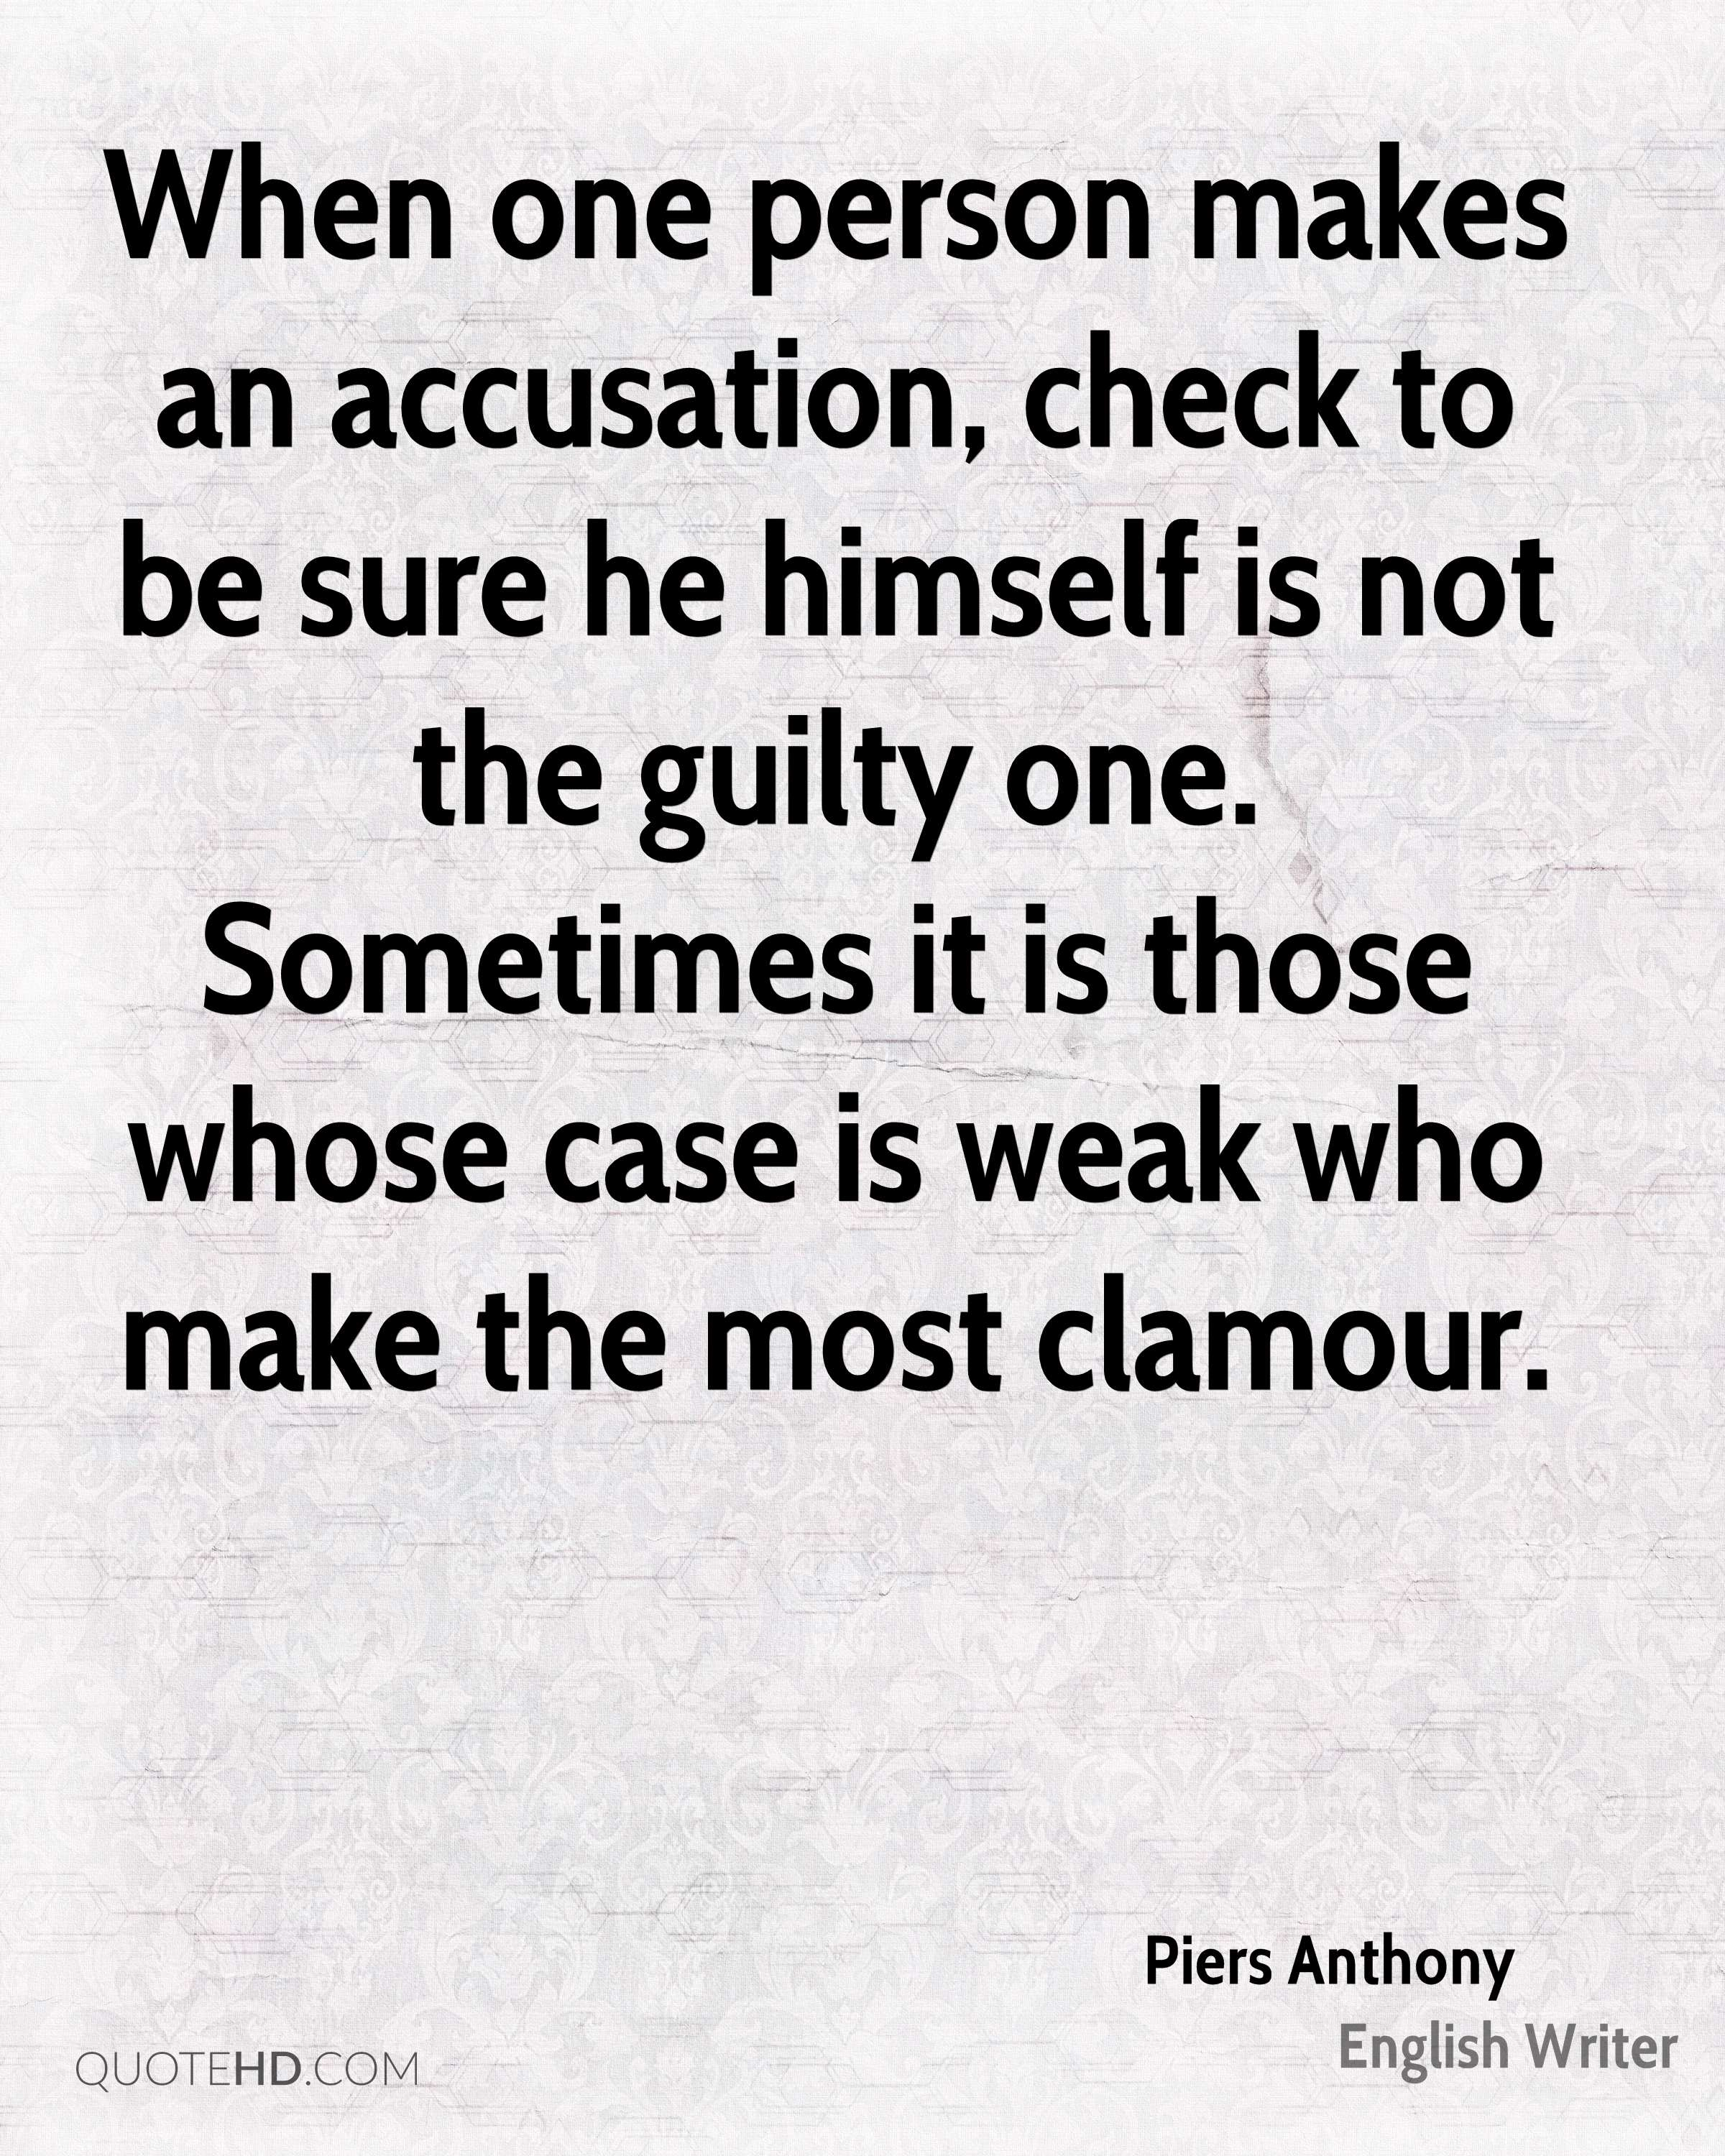 When one person makes an accusation, check to be sure he himself is not the guilty one. Sometimes it is those whose case is weak who make the most clamour.